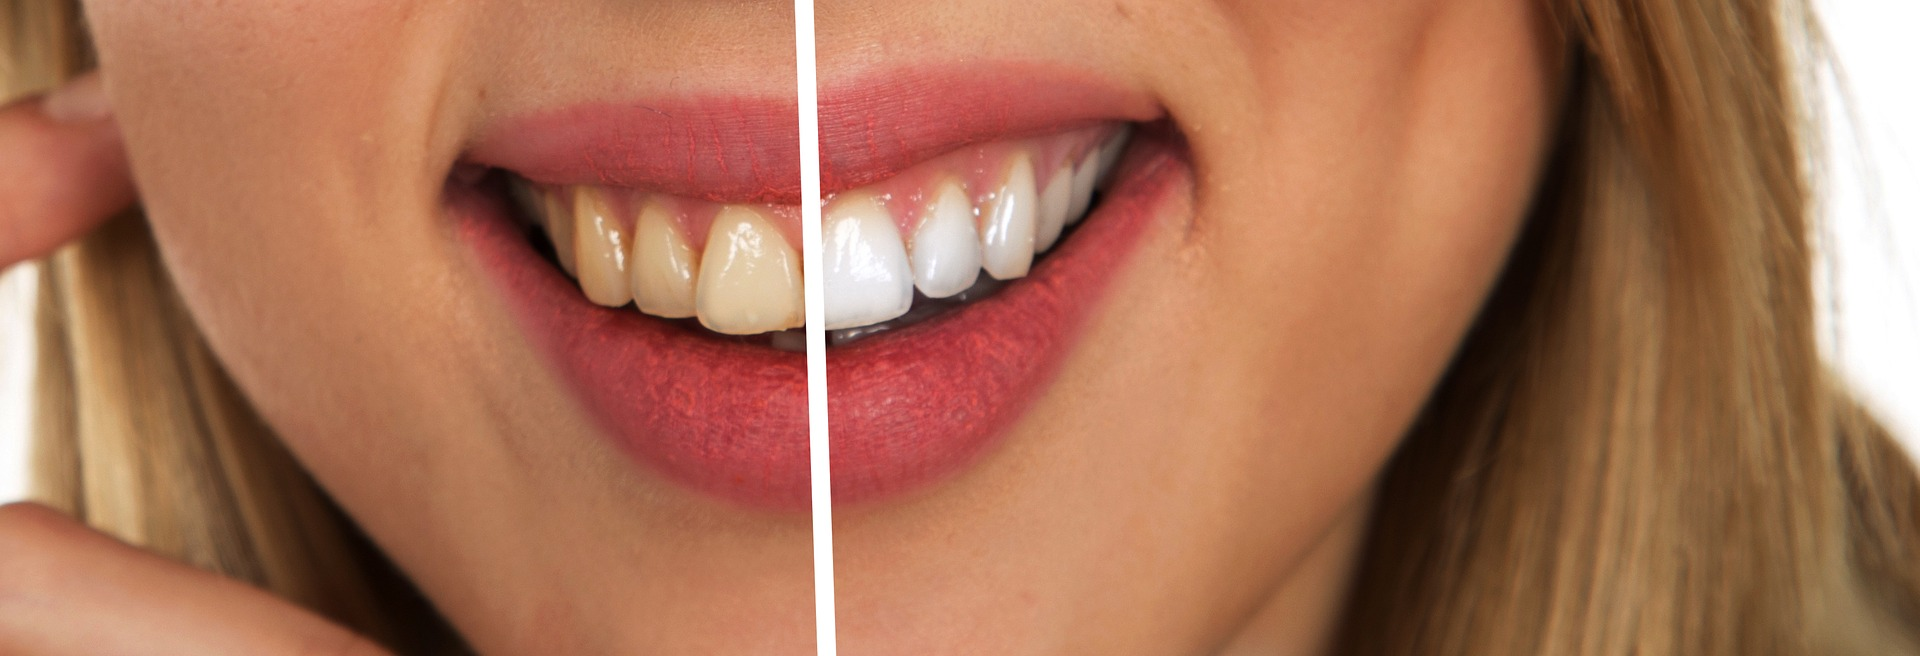 Before and After Dental Clinic